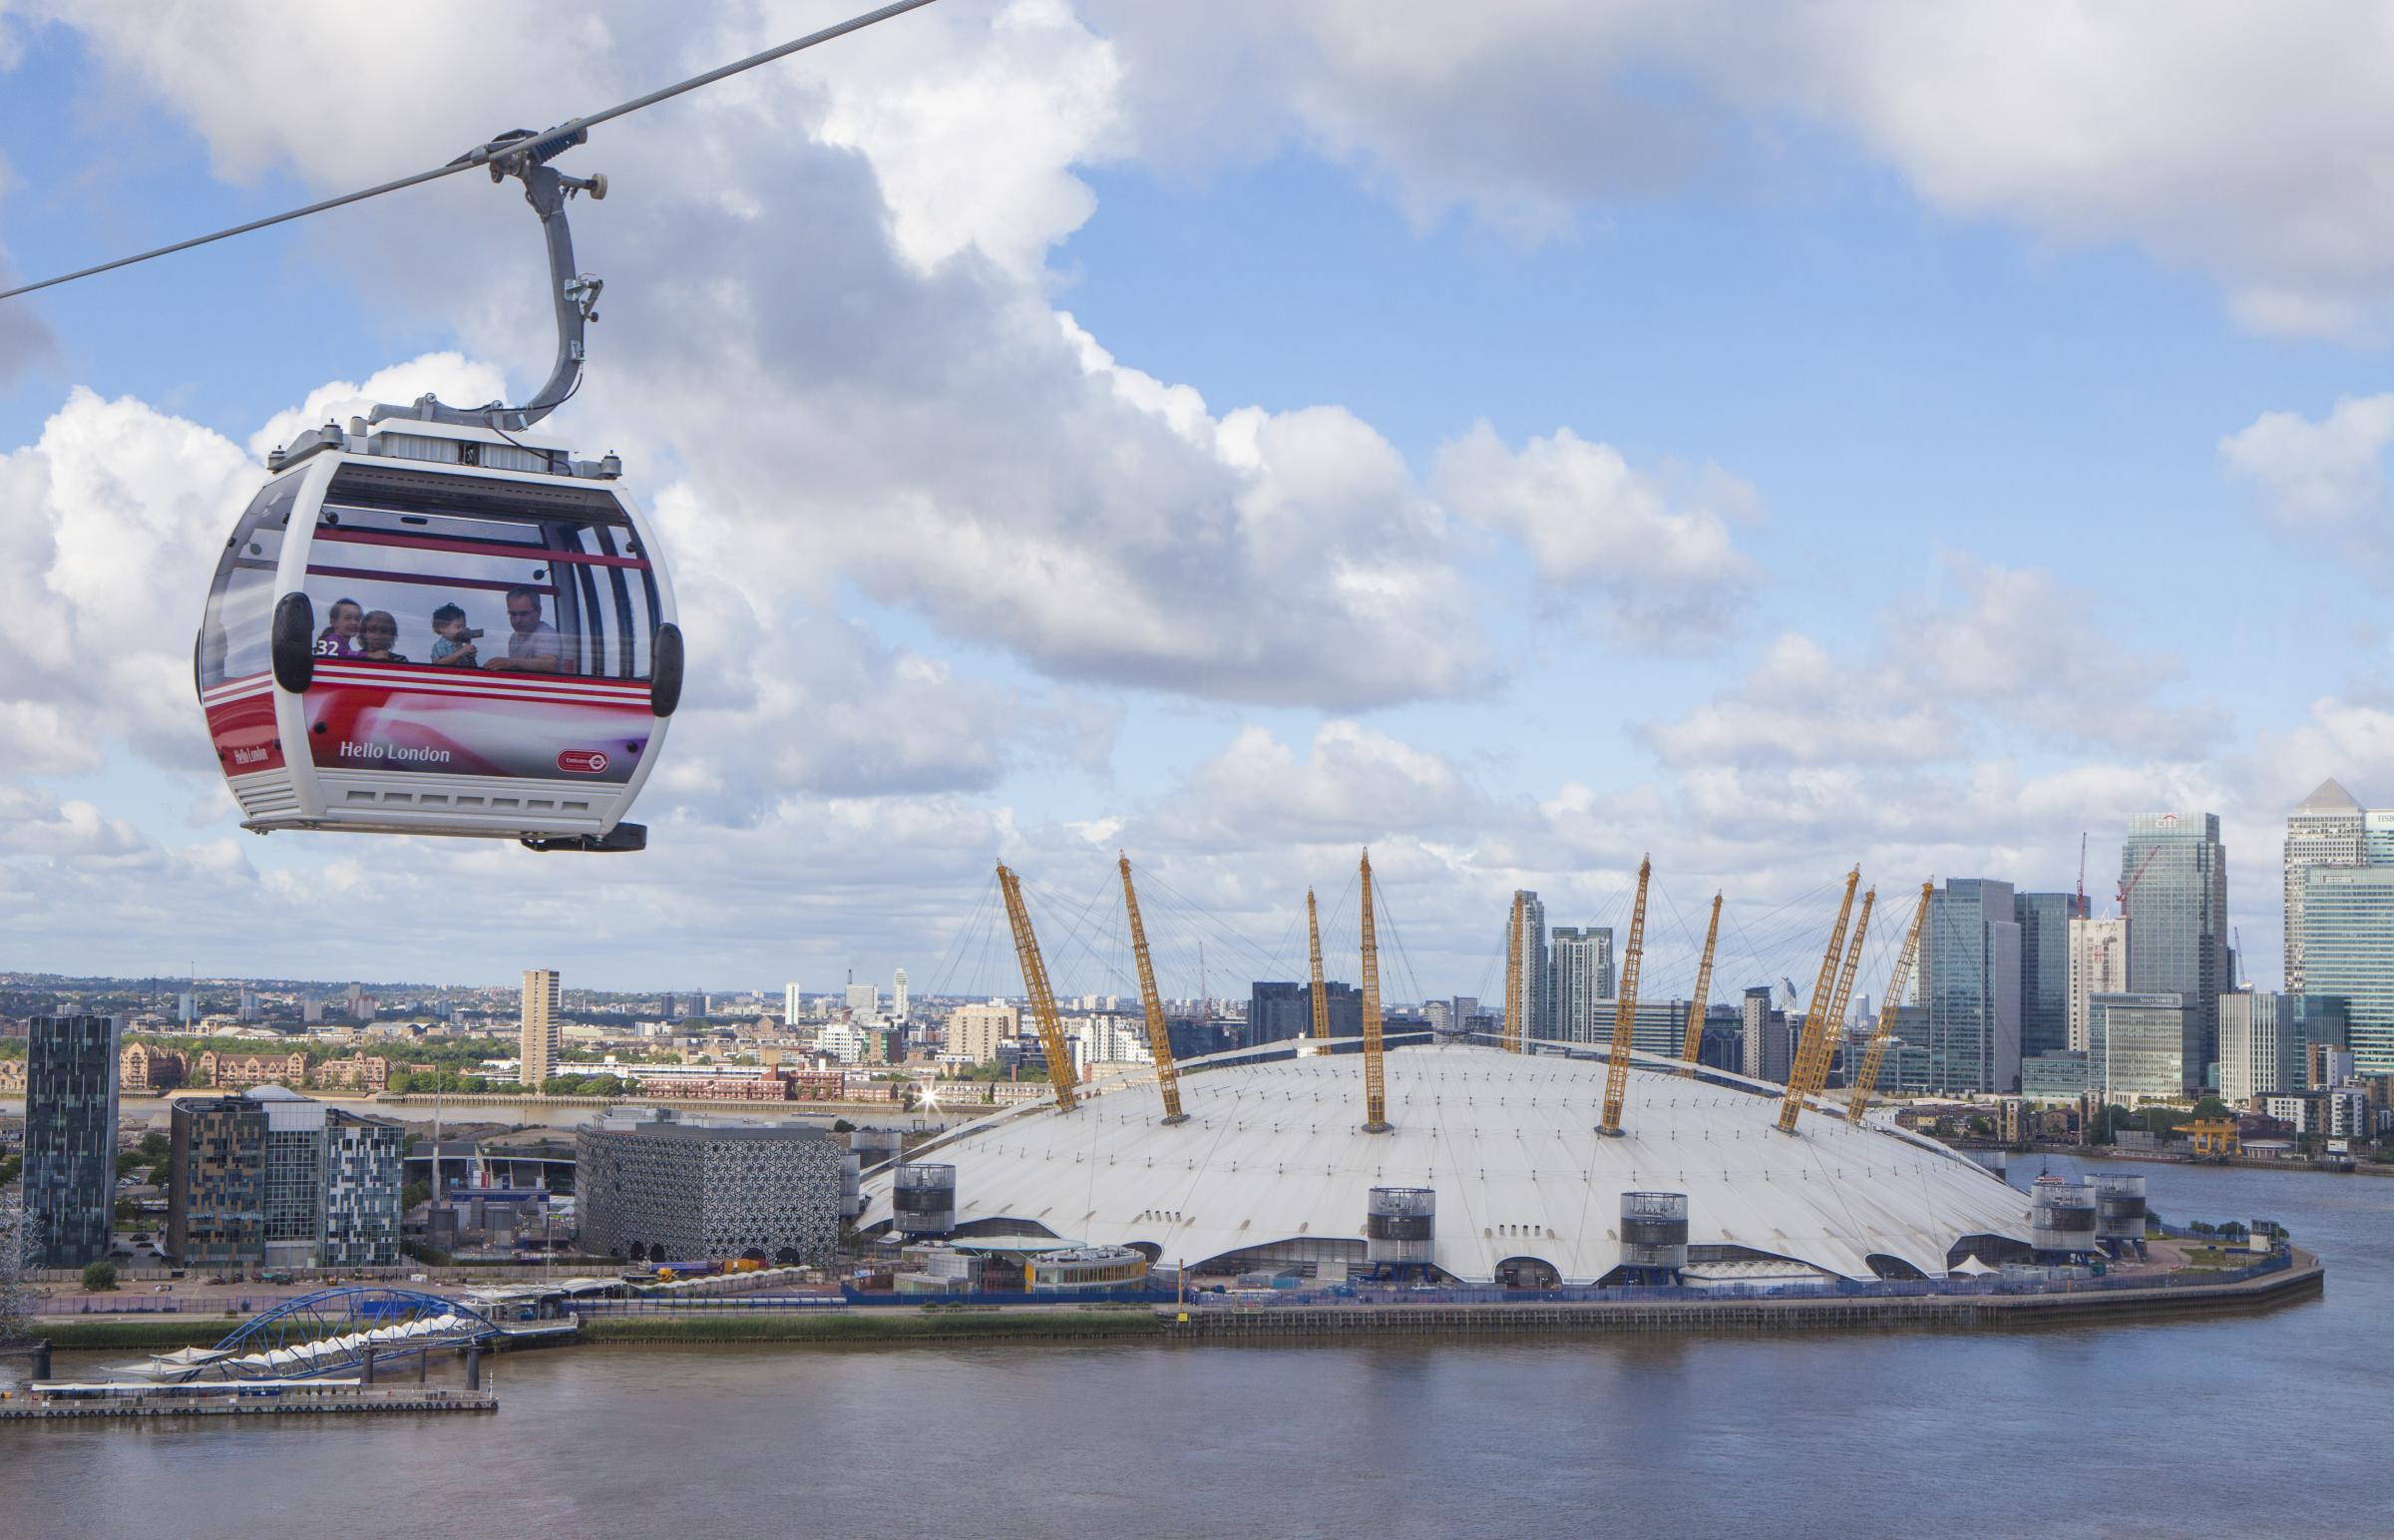 Greenwich and Newham Emirates Air Line passengers to get 50% discount